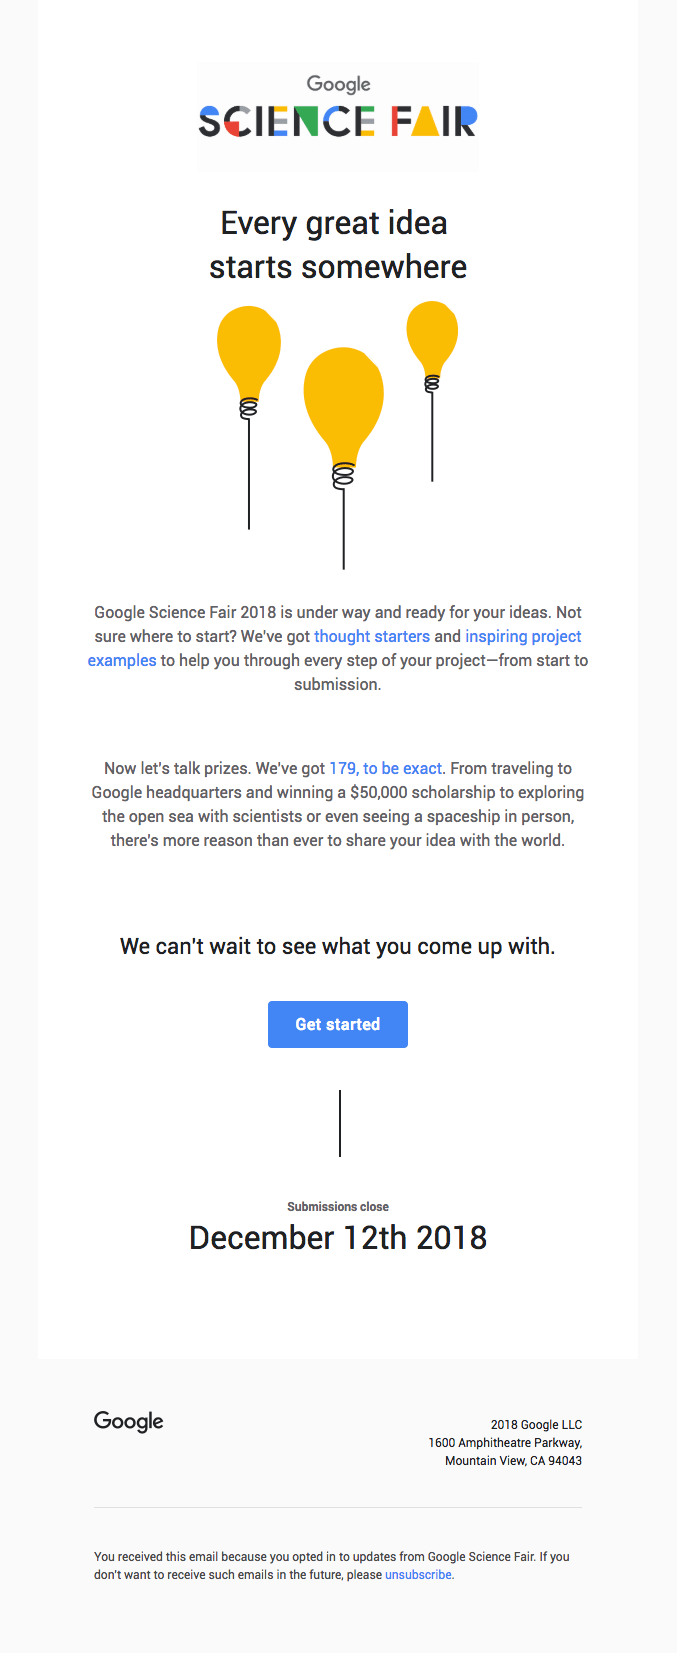 Google Science Fair invitation